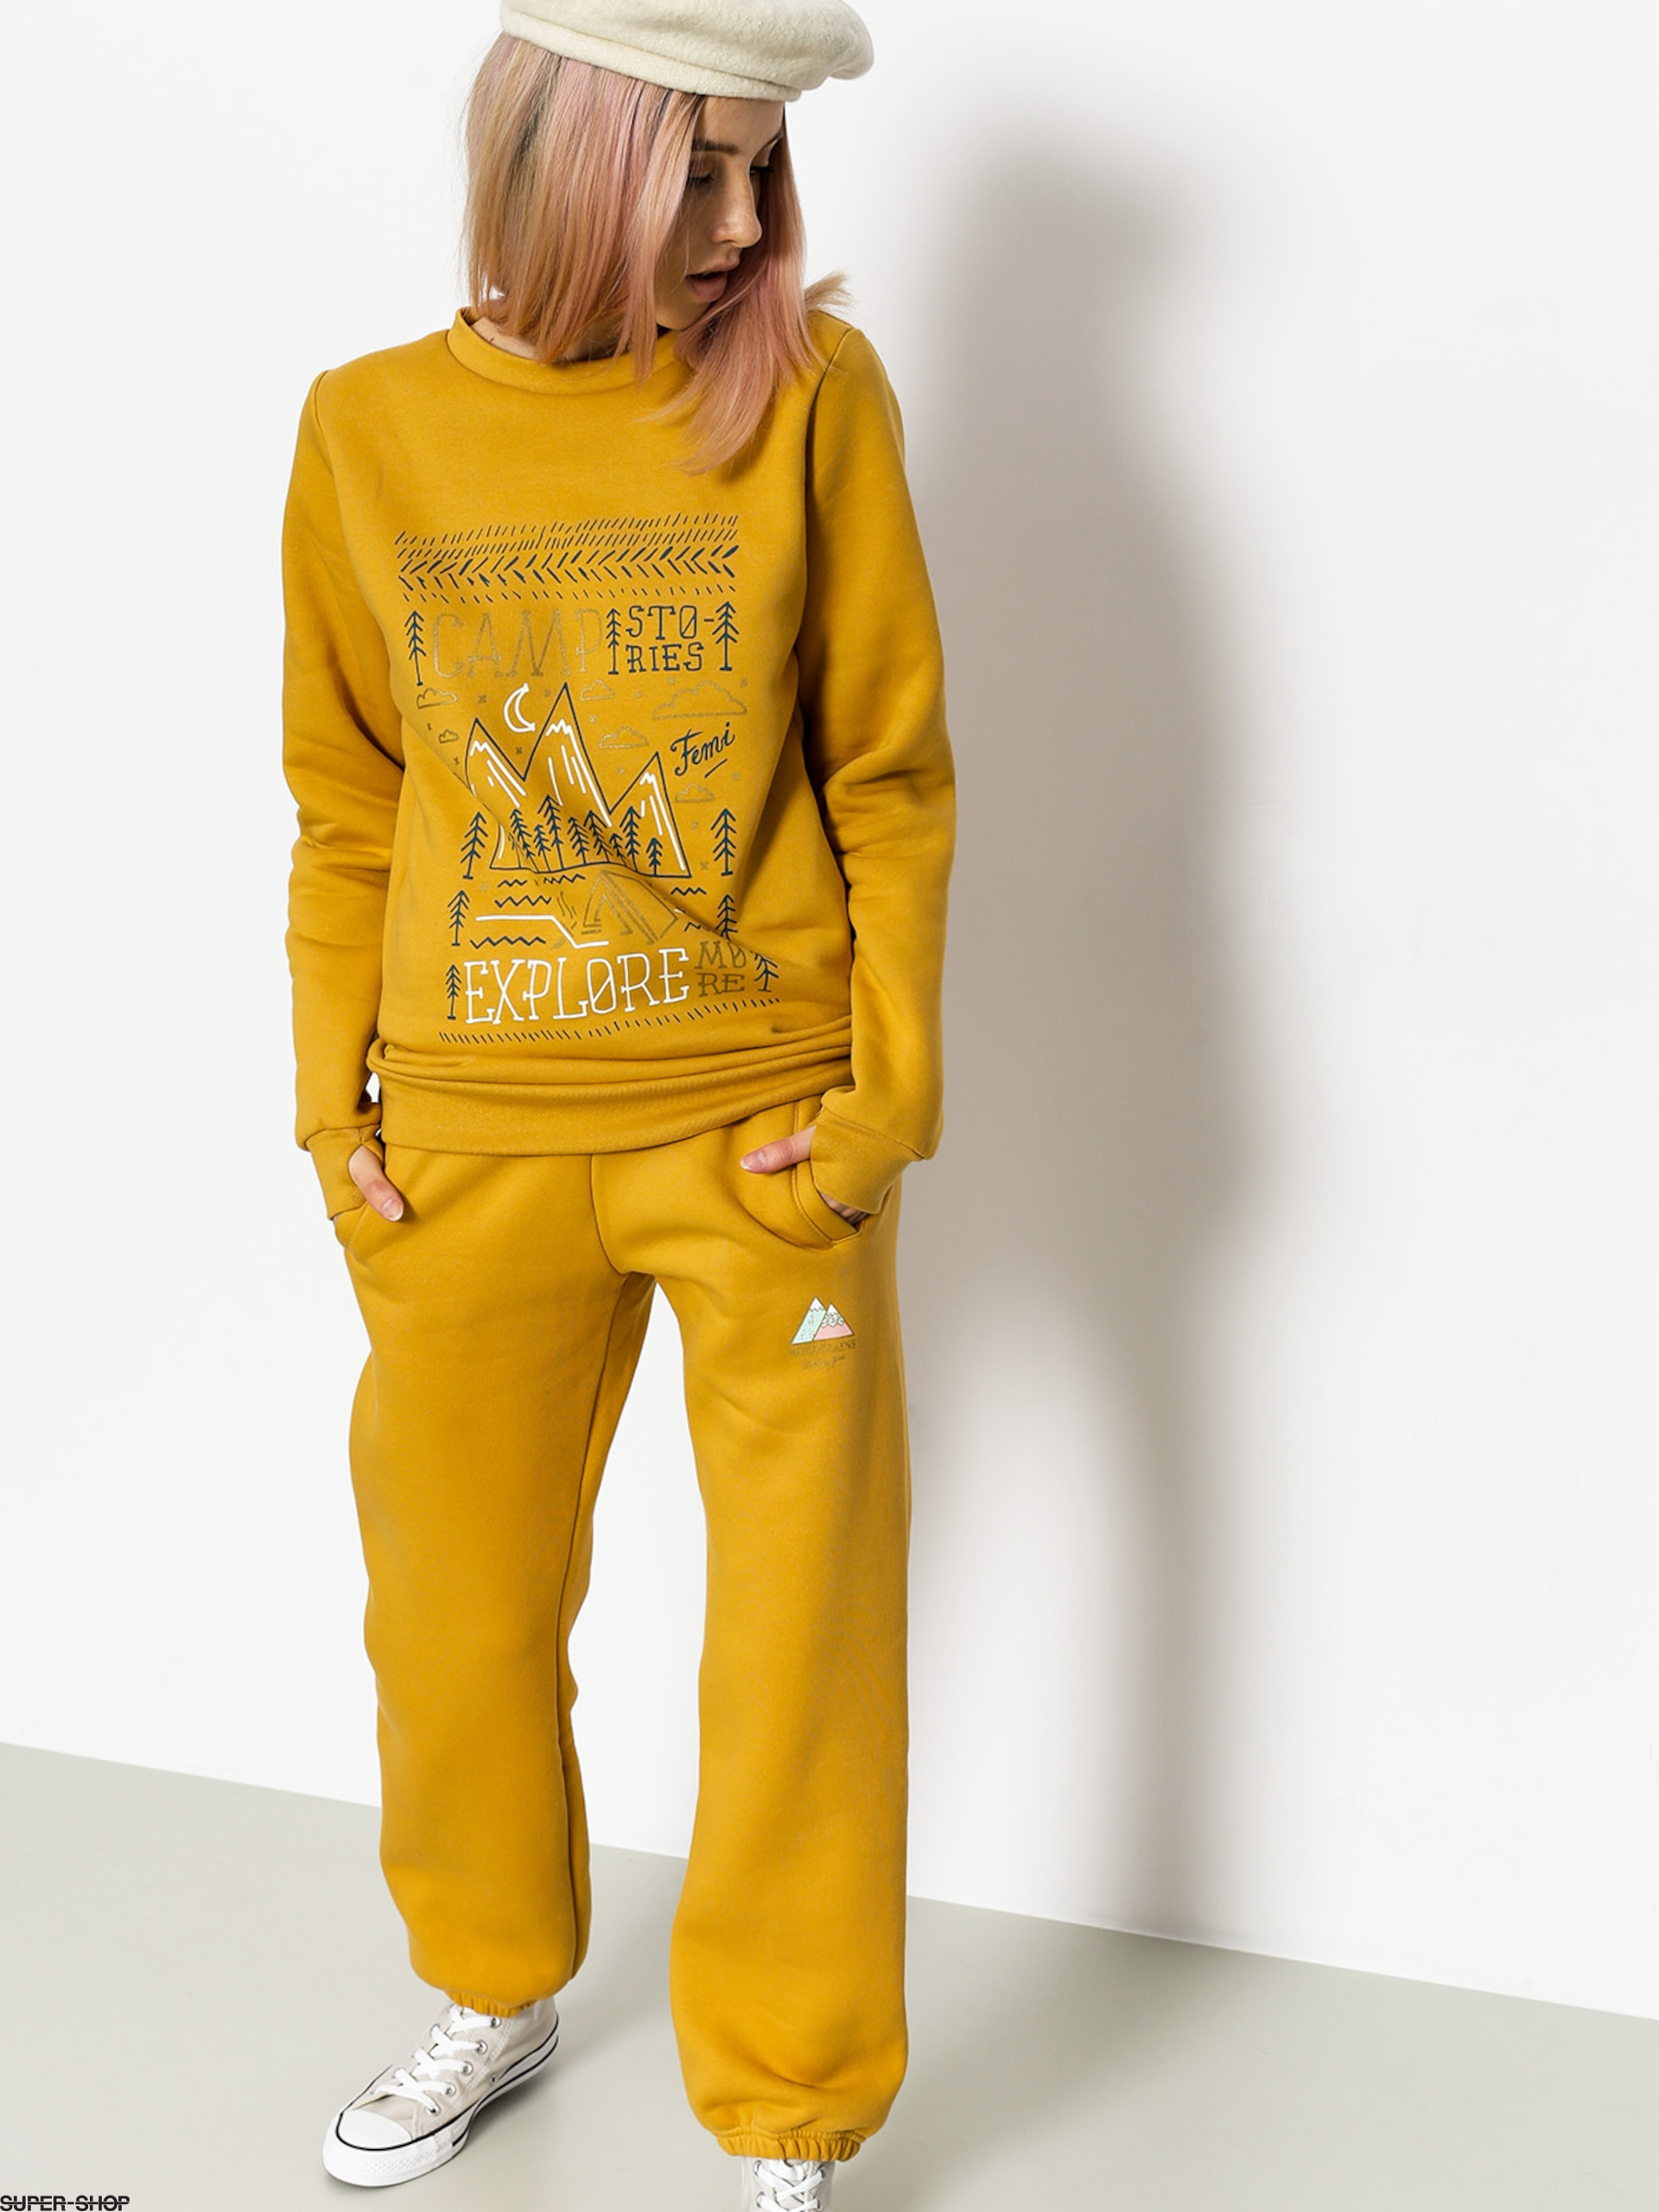 Femi Stories Sweatshirt Explore Wmn